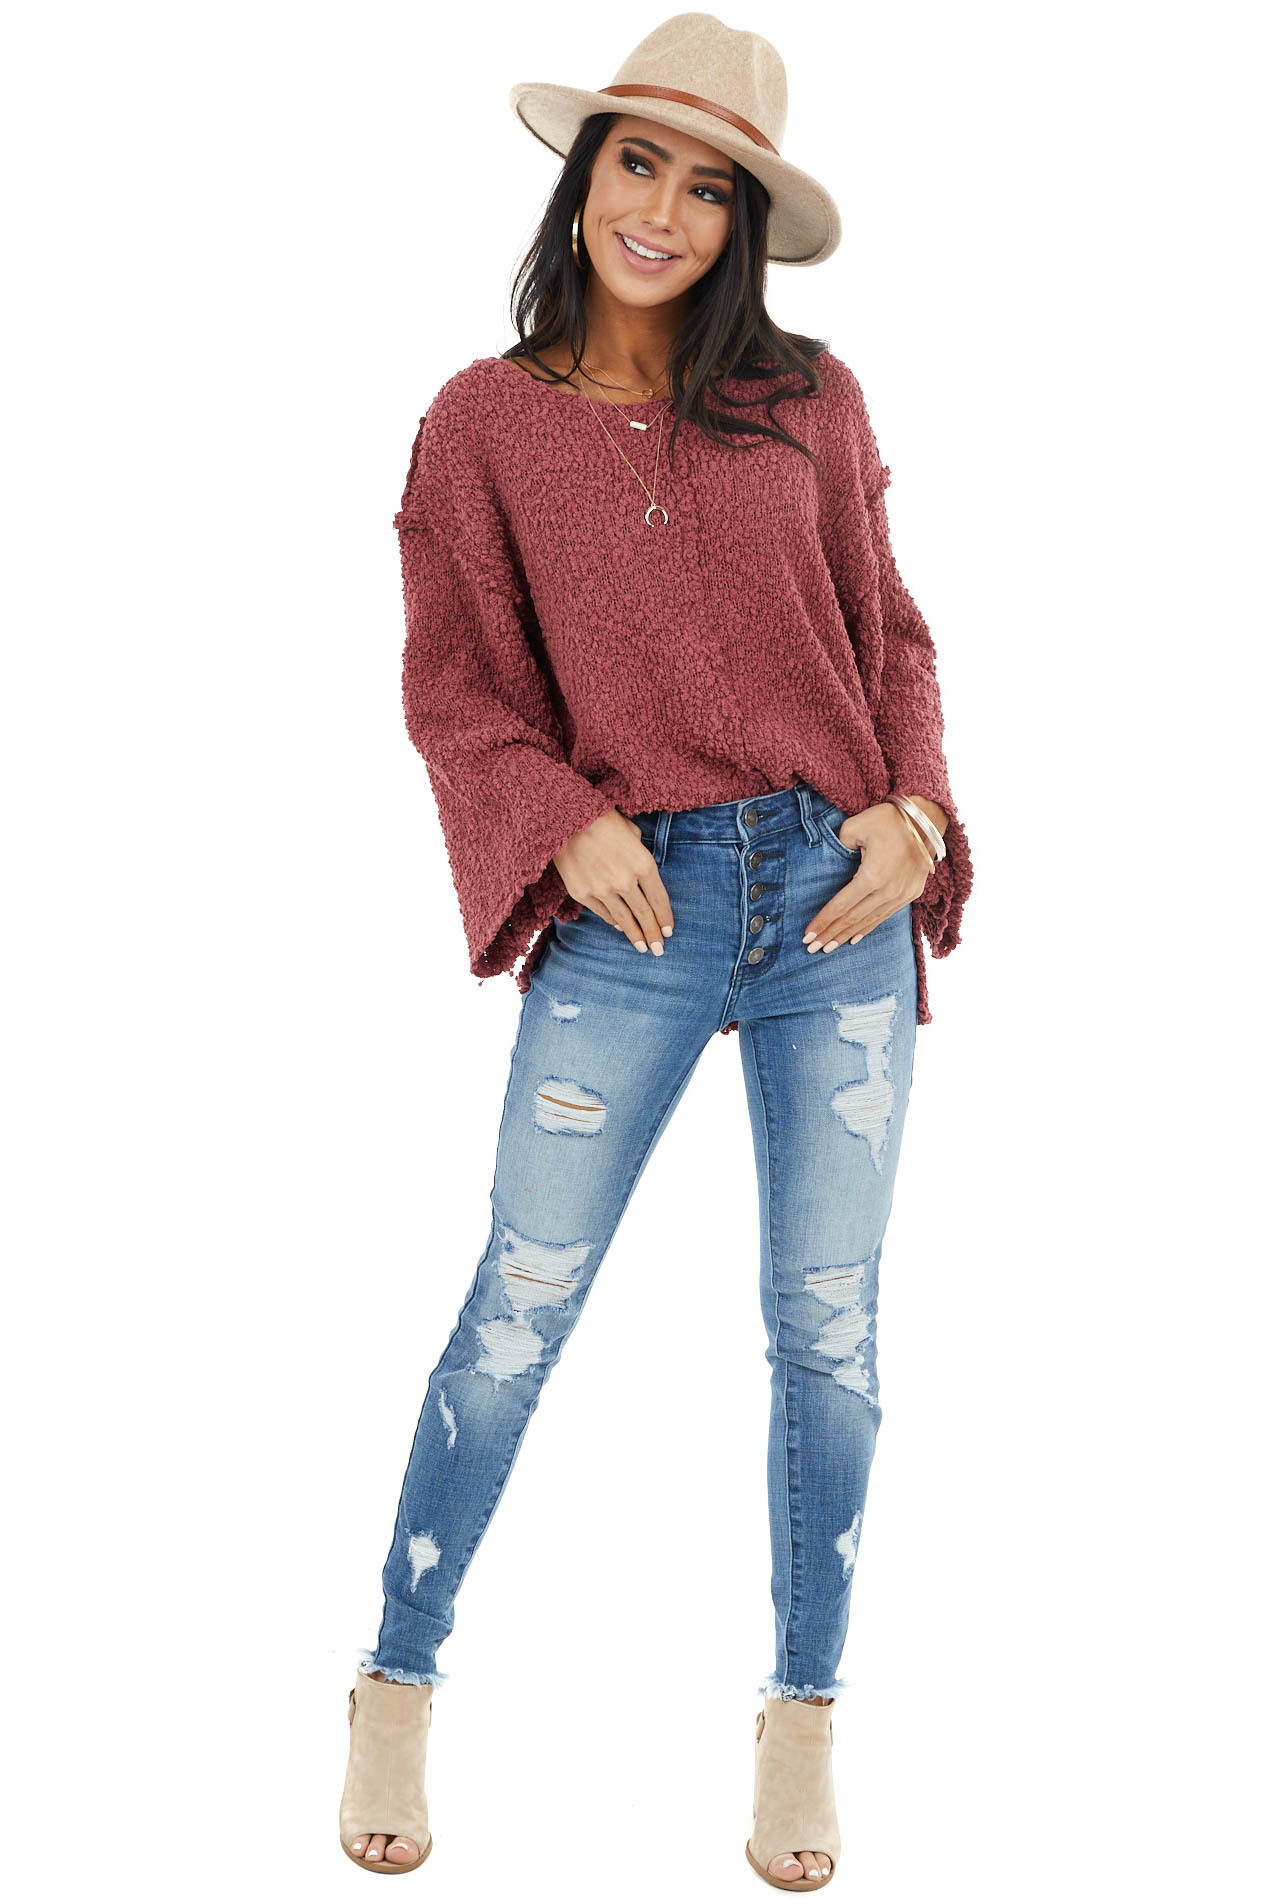 Marsala Knit Lightweight Sweater with Side Slit Details